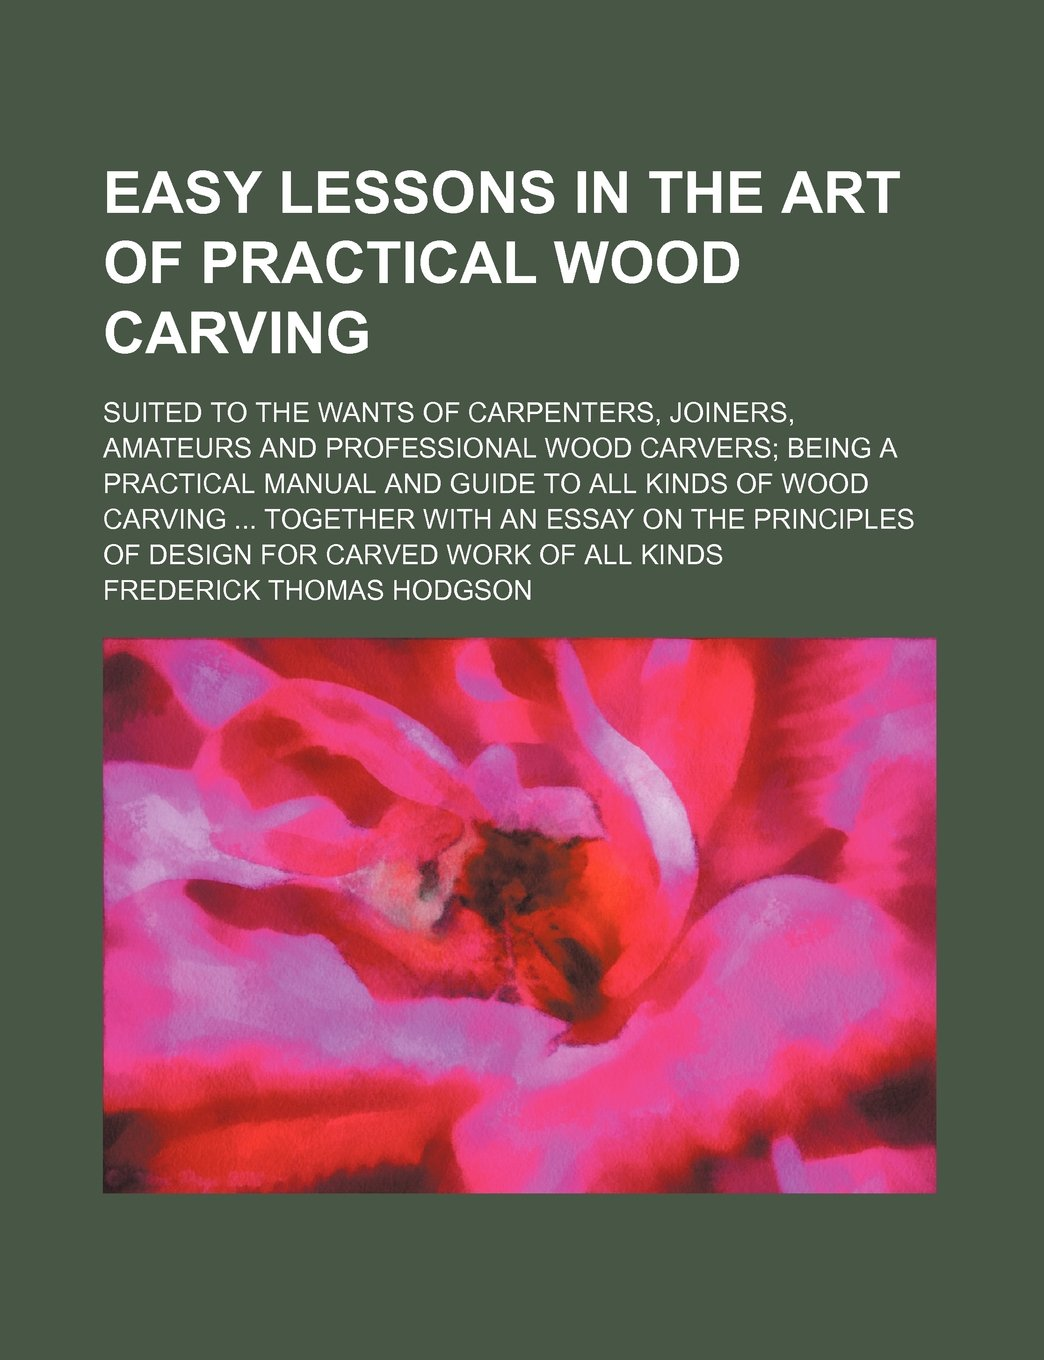 Easy lessons in the art of practical wood carving